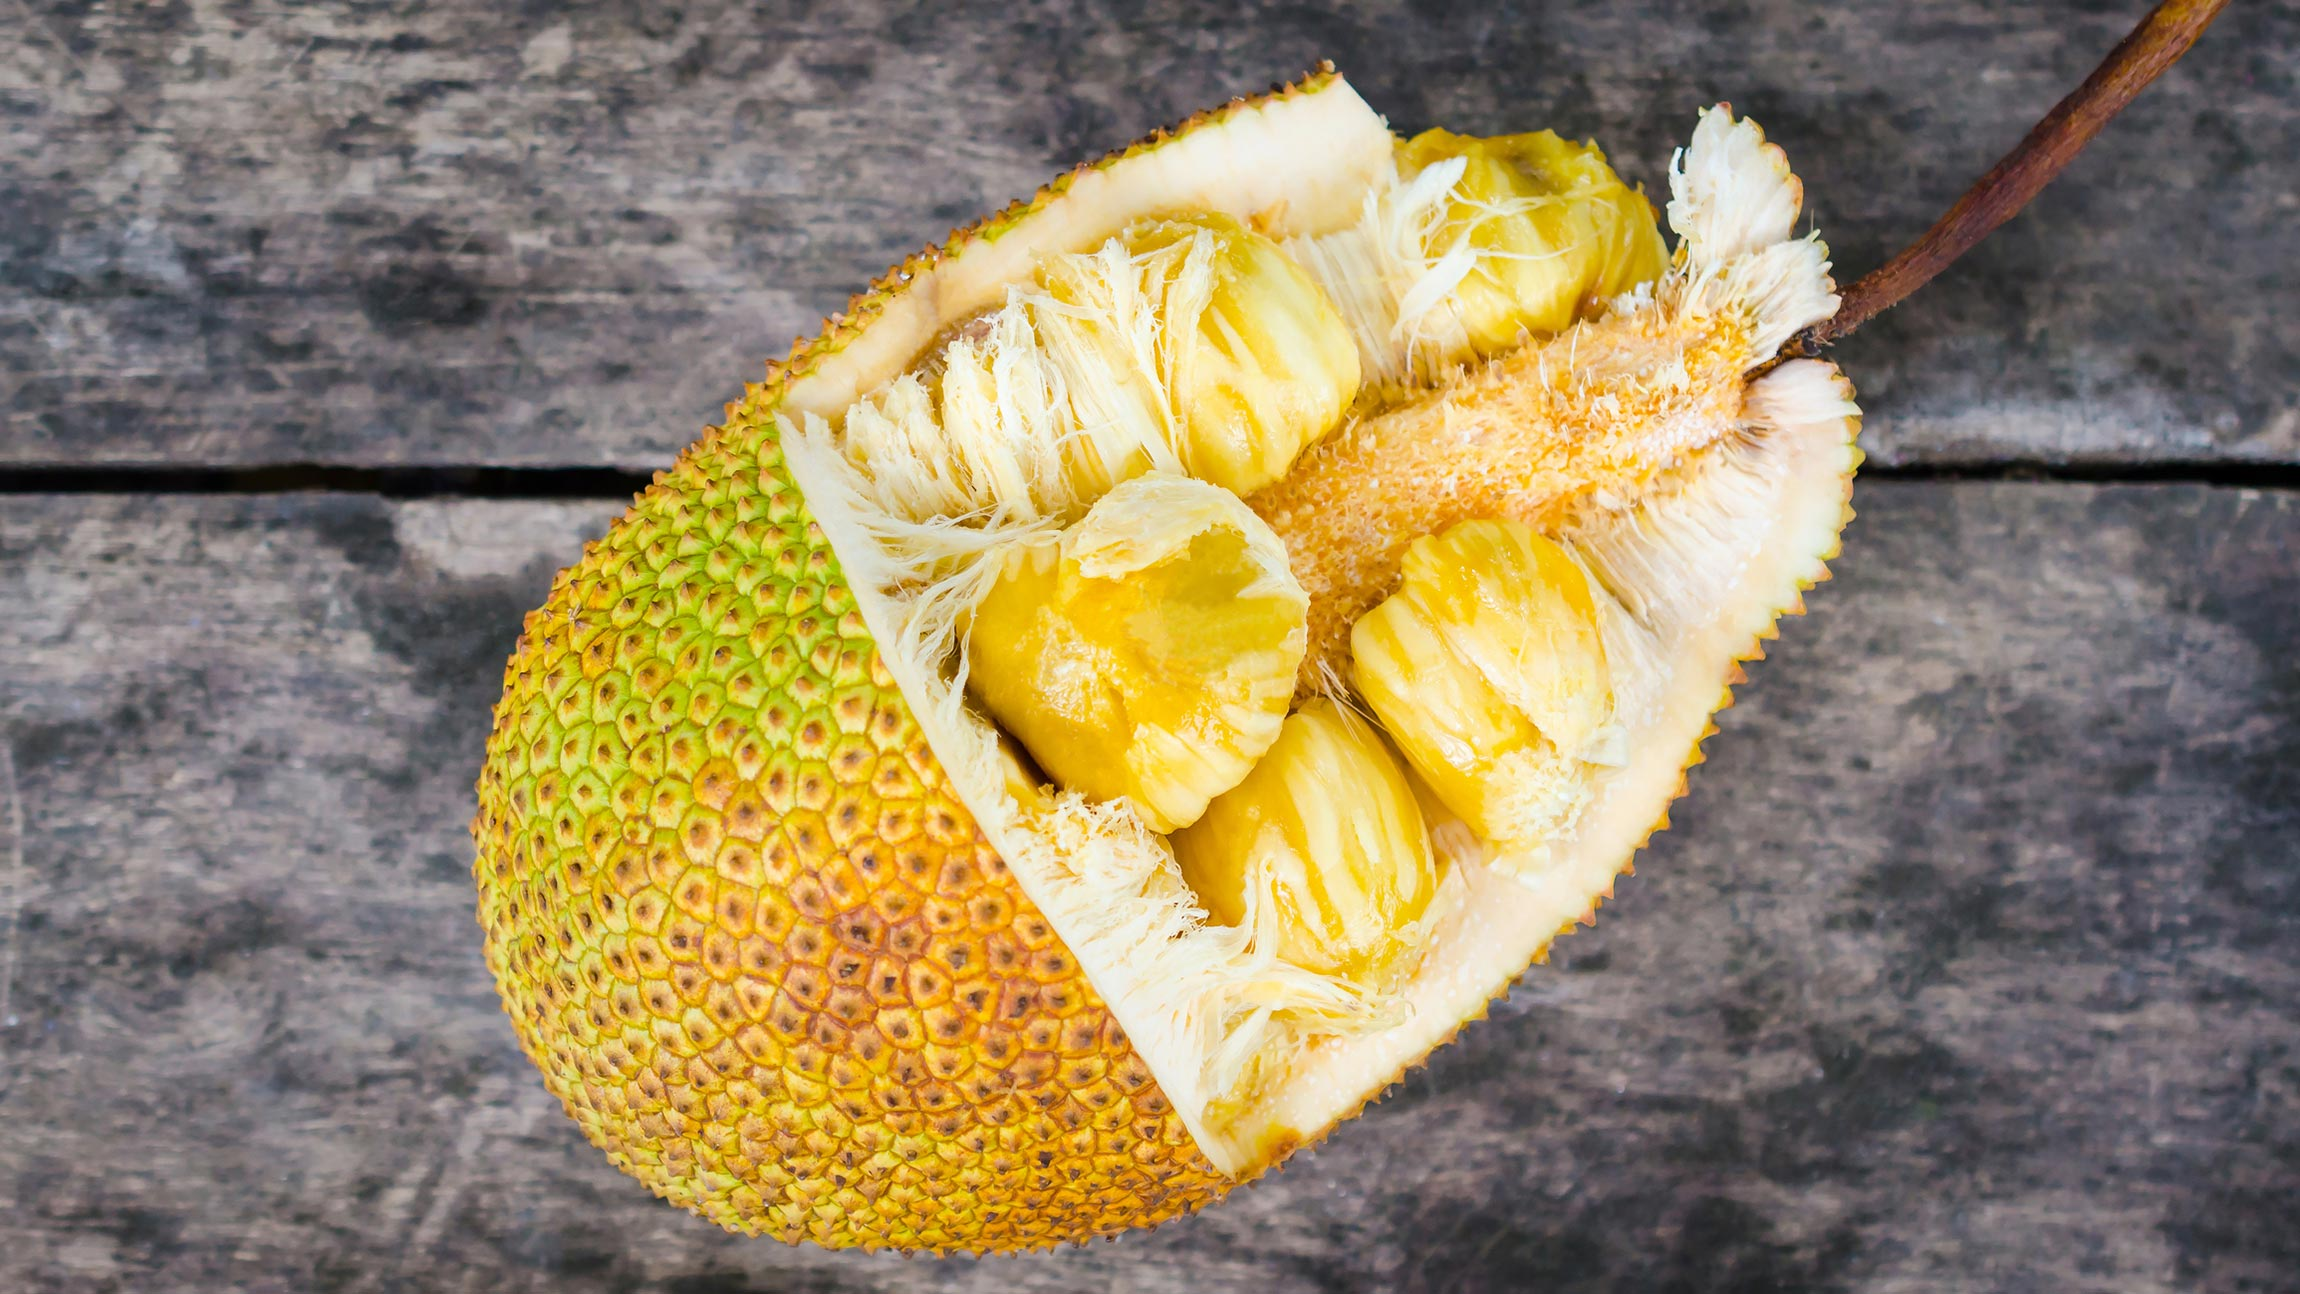 Jackfruit. Image: Food Revolution